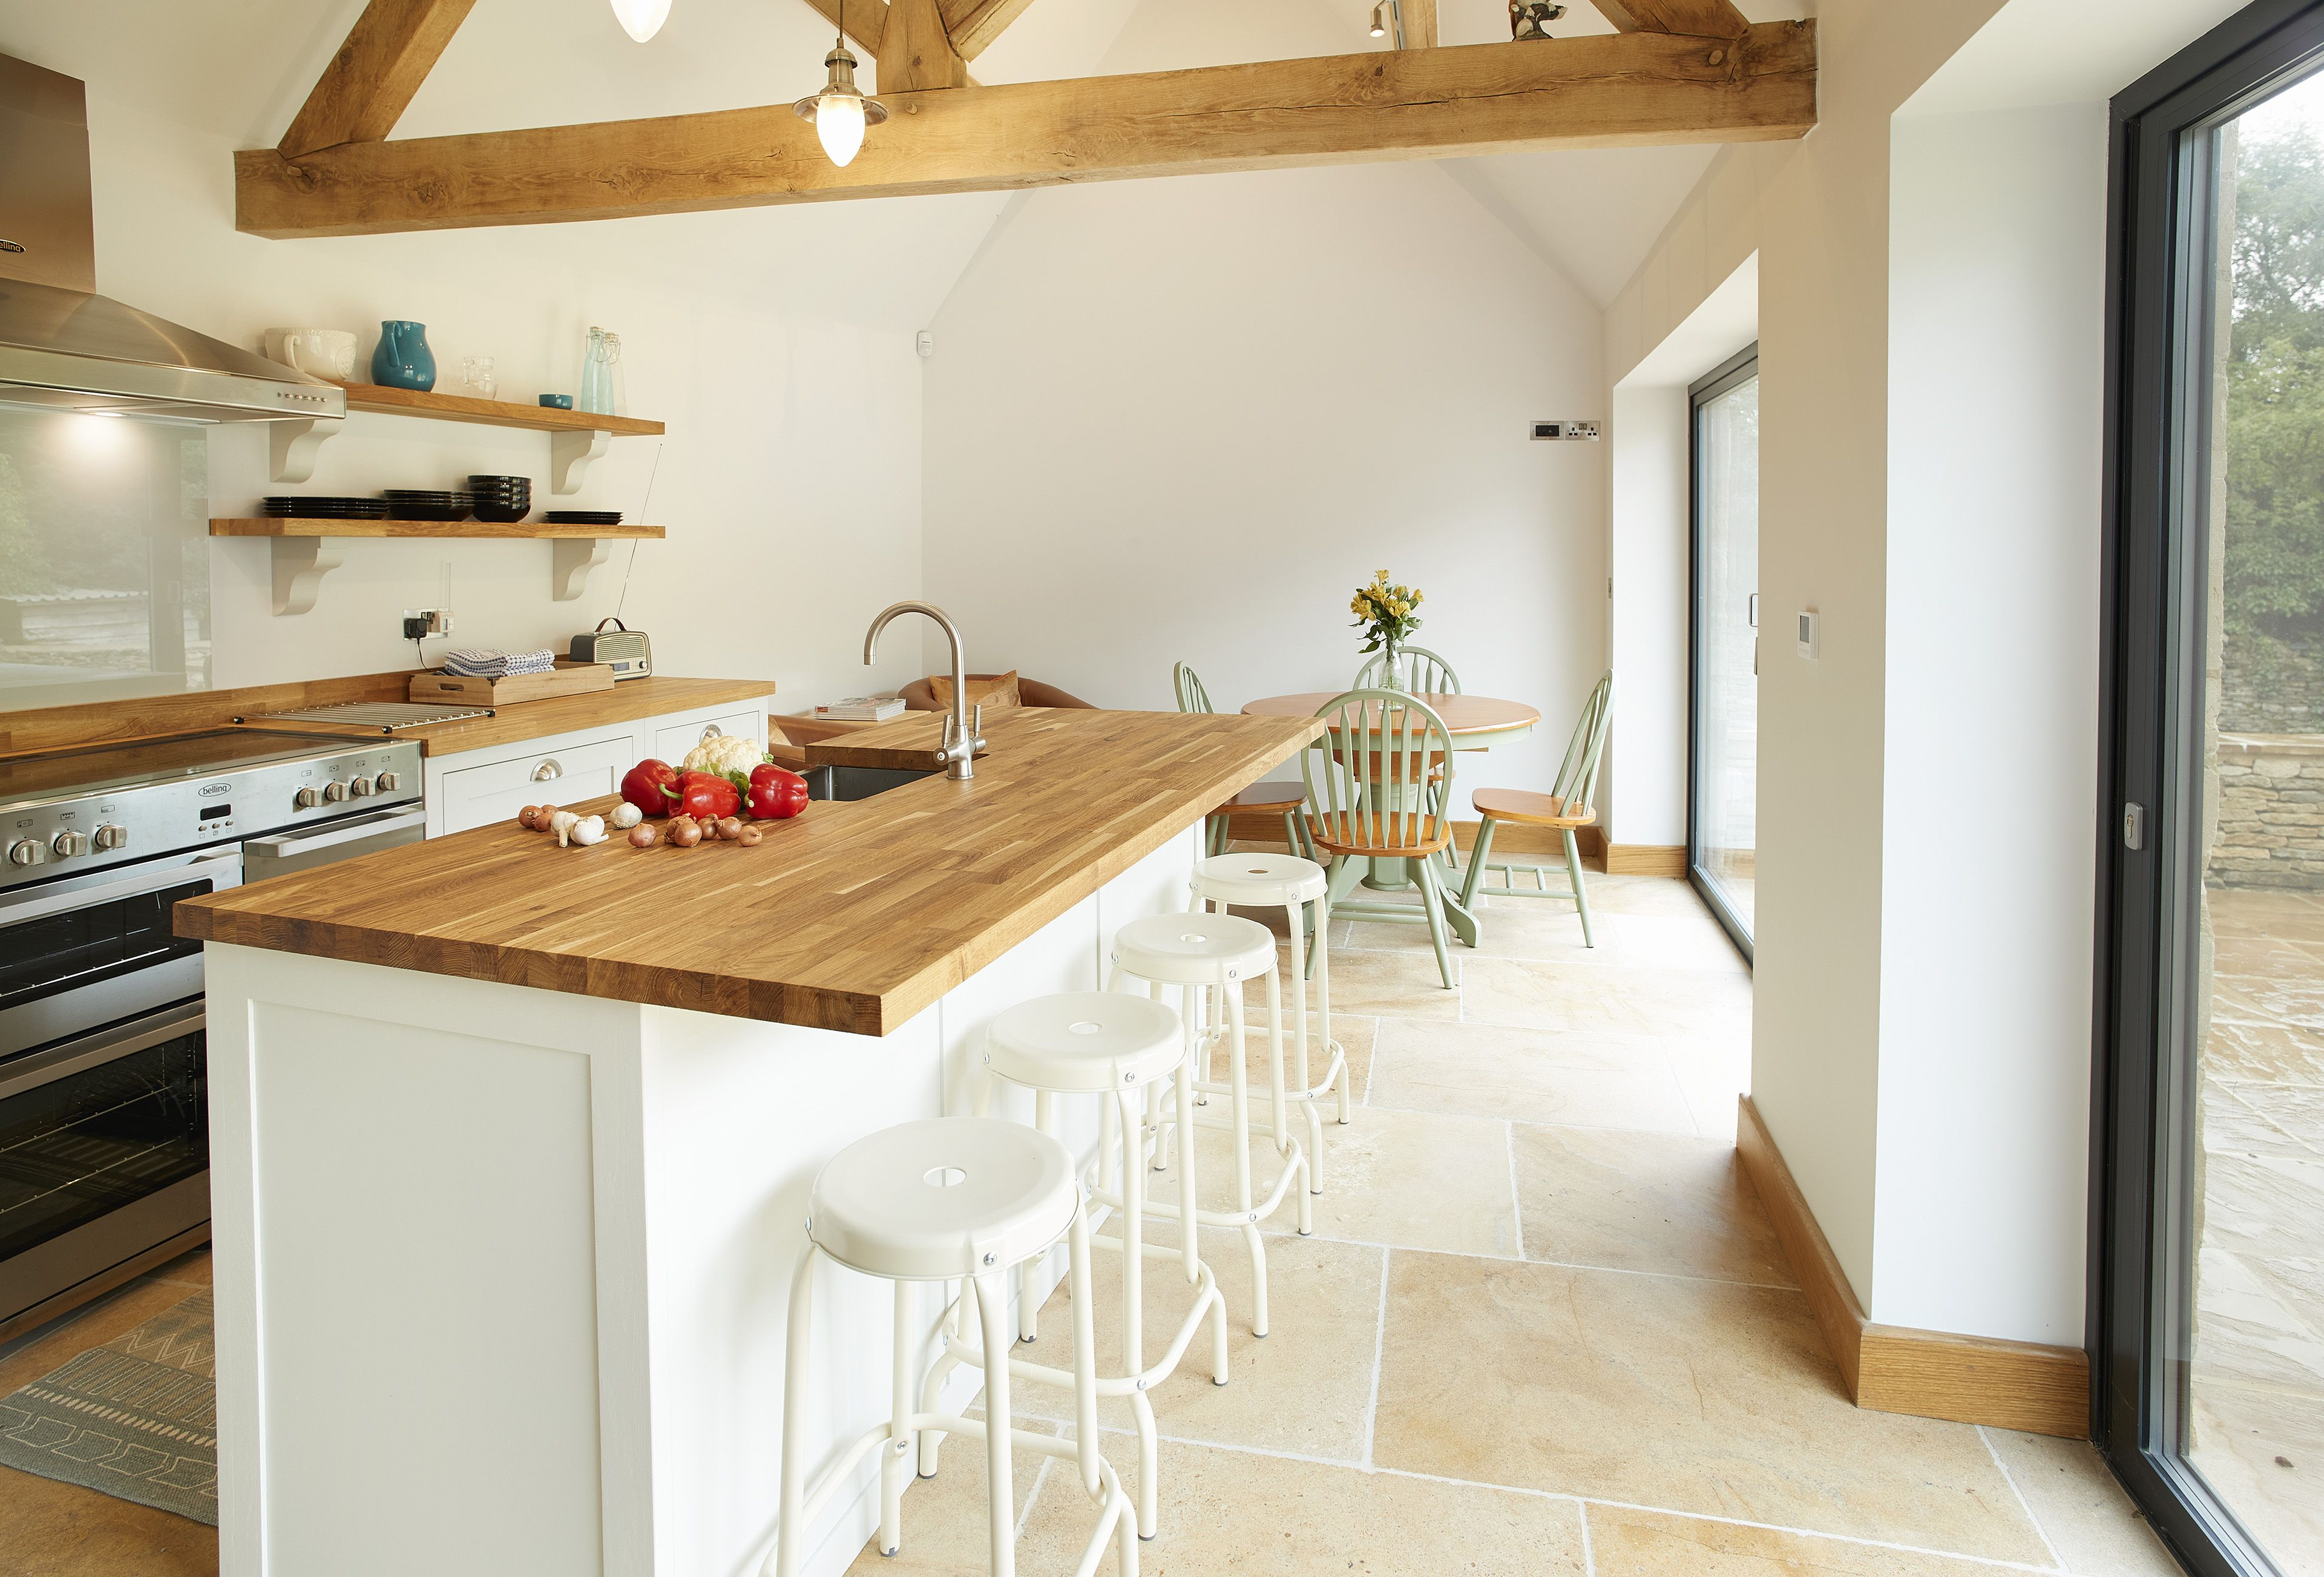 Rosebank Barn - Holiday Cottages in the Cotswolds